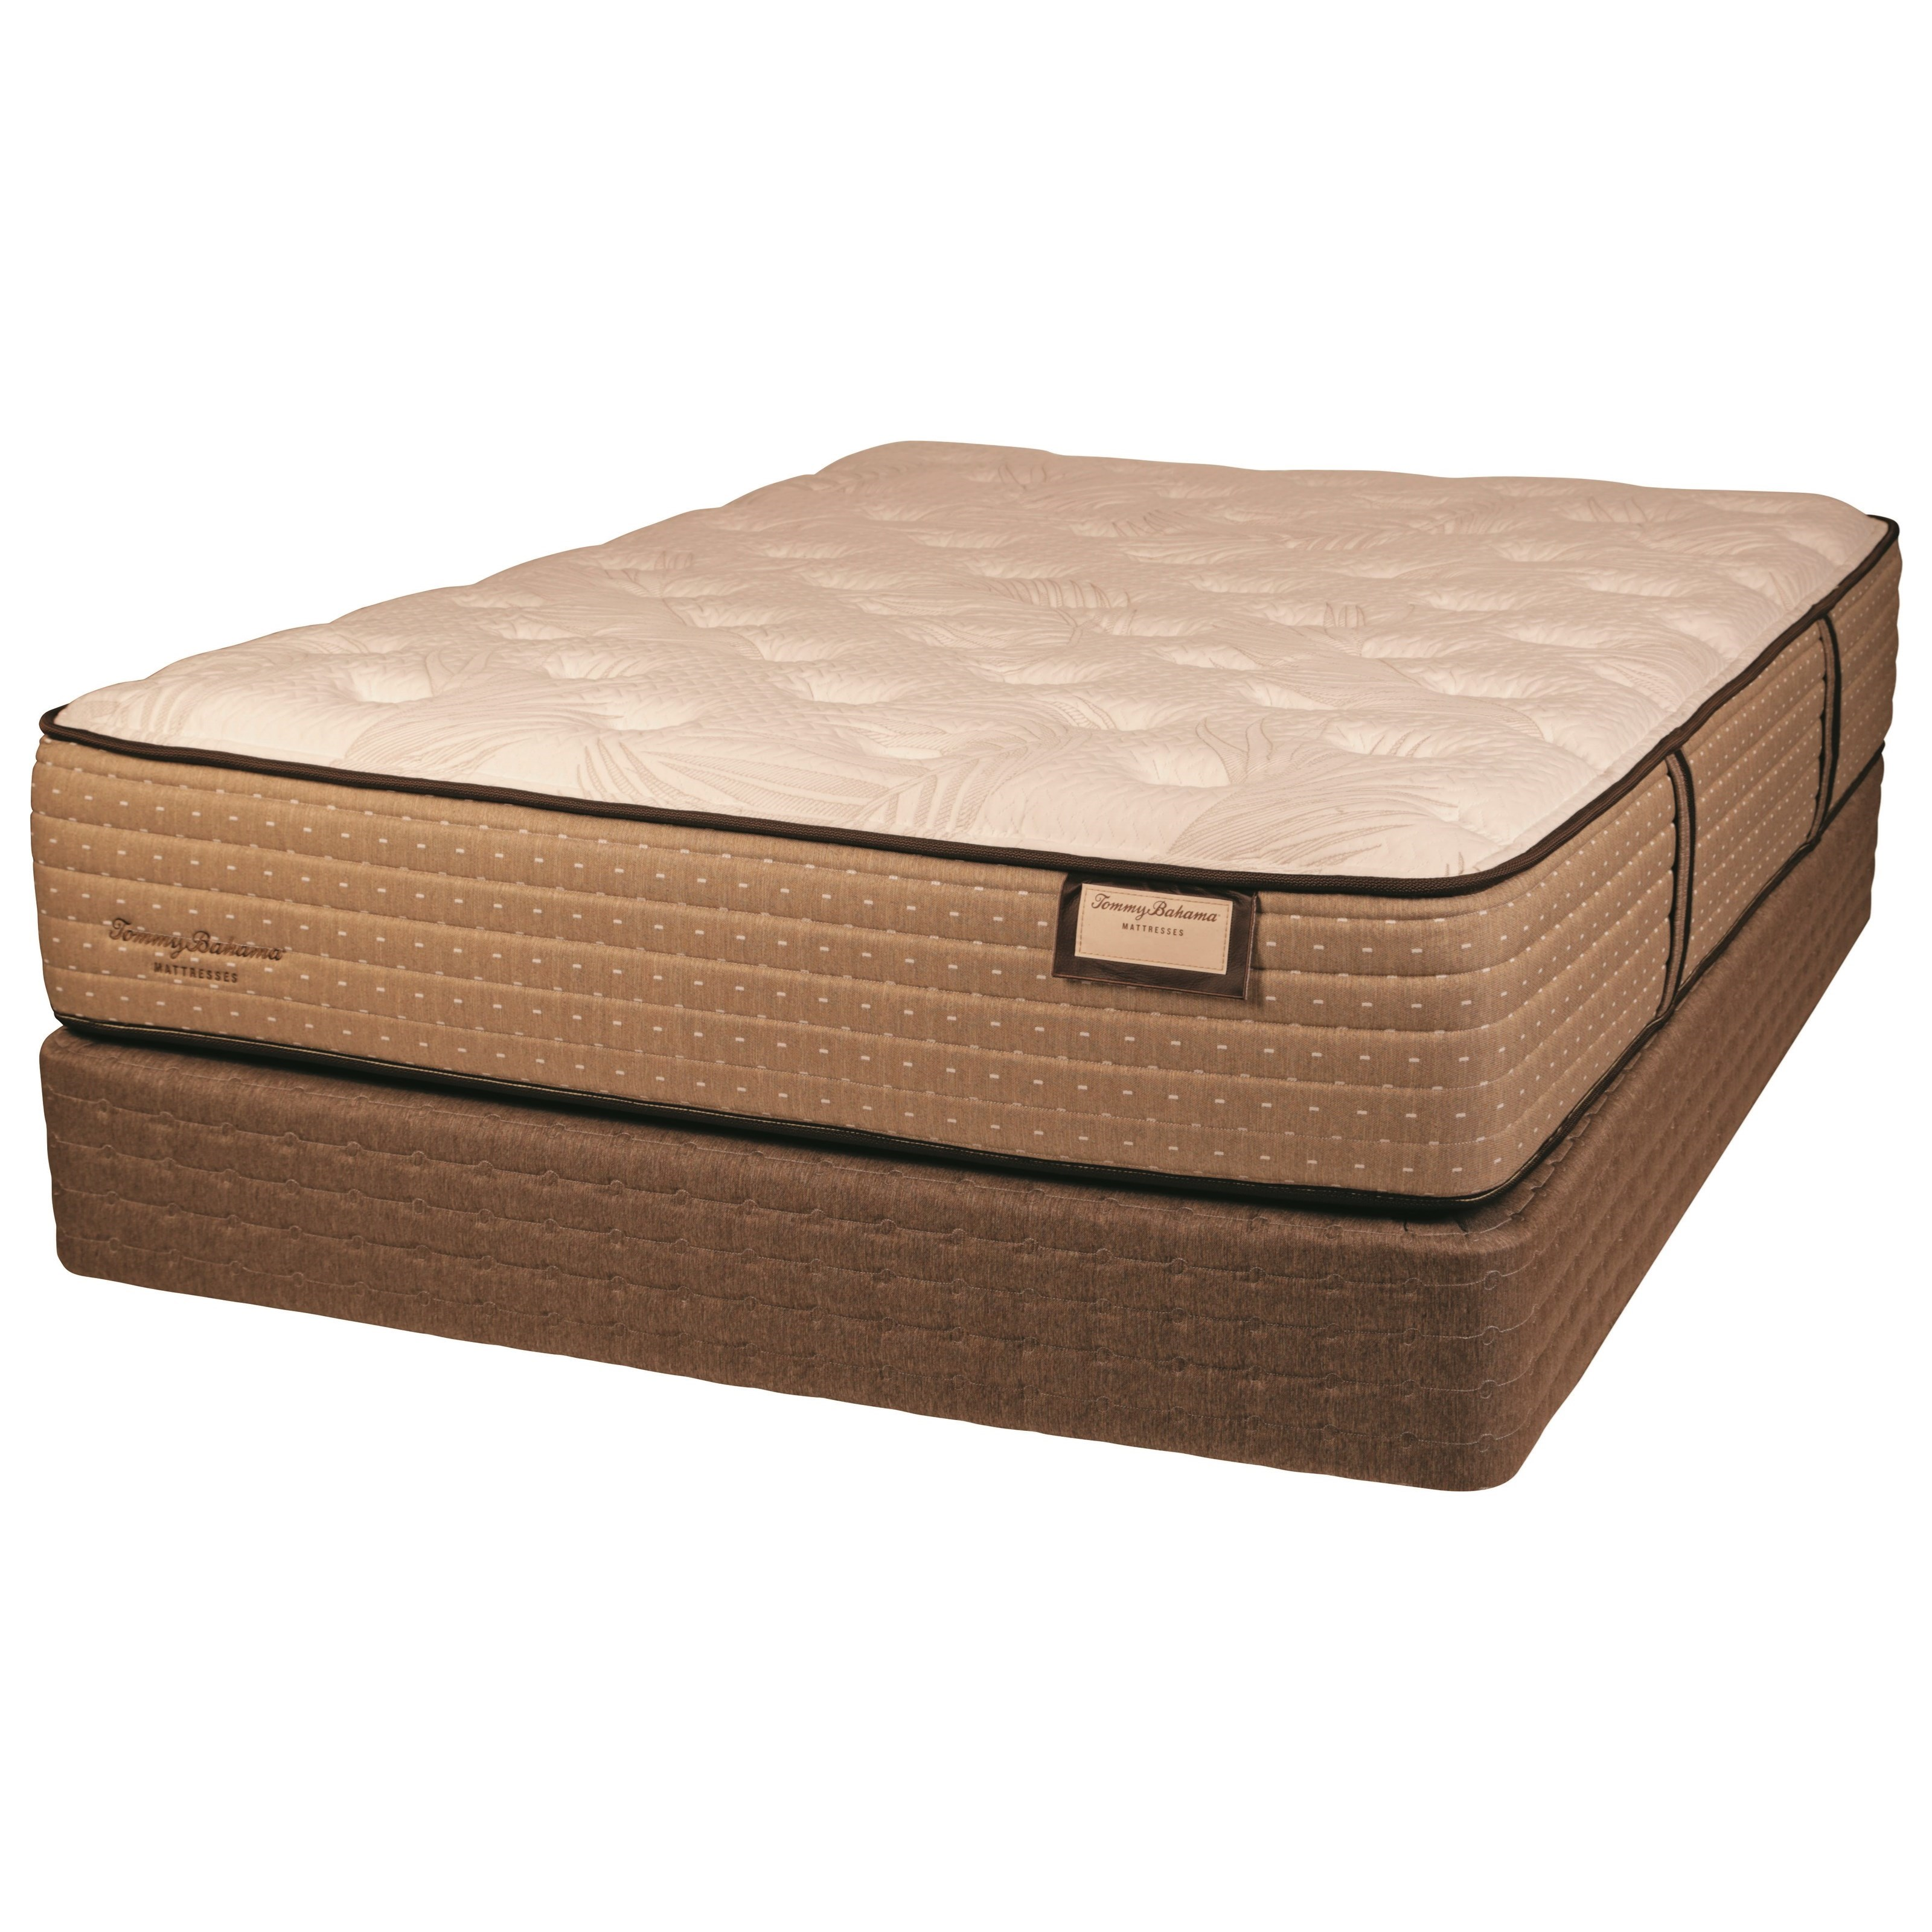 Tommy Bahama Shake the Sand Firm 6034 Twin XL Firm Luxury Mattress Set by Tommy Bahama Mattress at Baer's Furniture